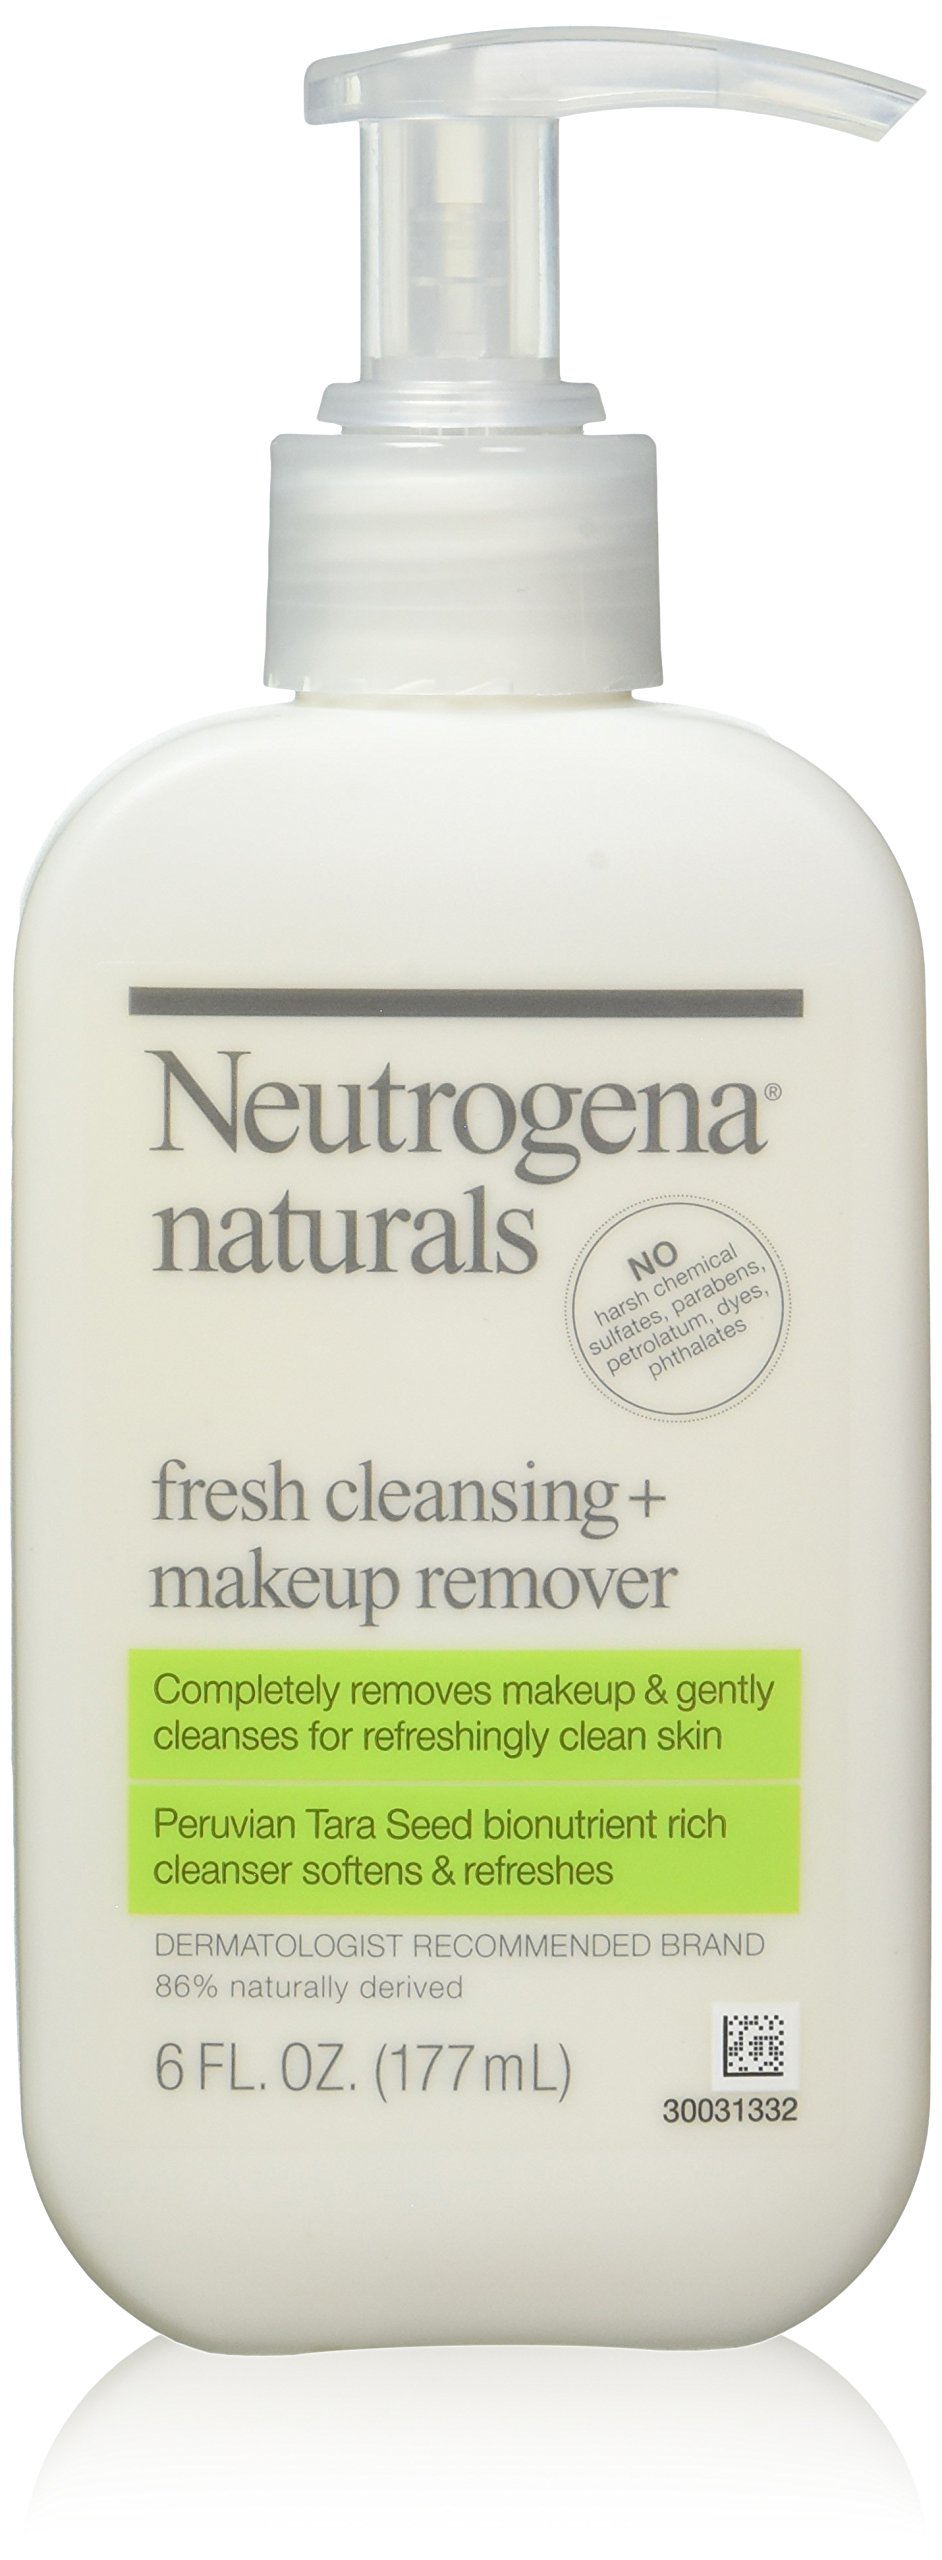 Neutrogena Naturals Fresh Cleansing Plus Makeup Remover - 6 Oz (Pack of 3)